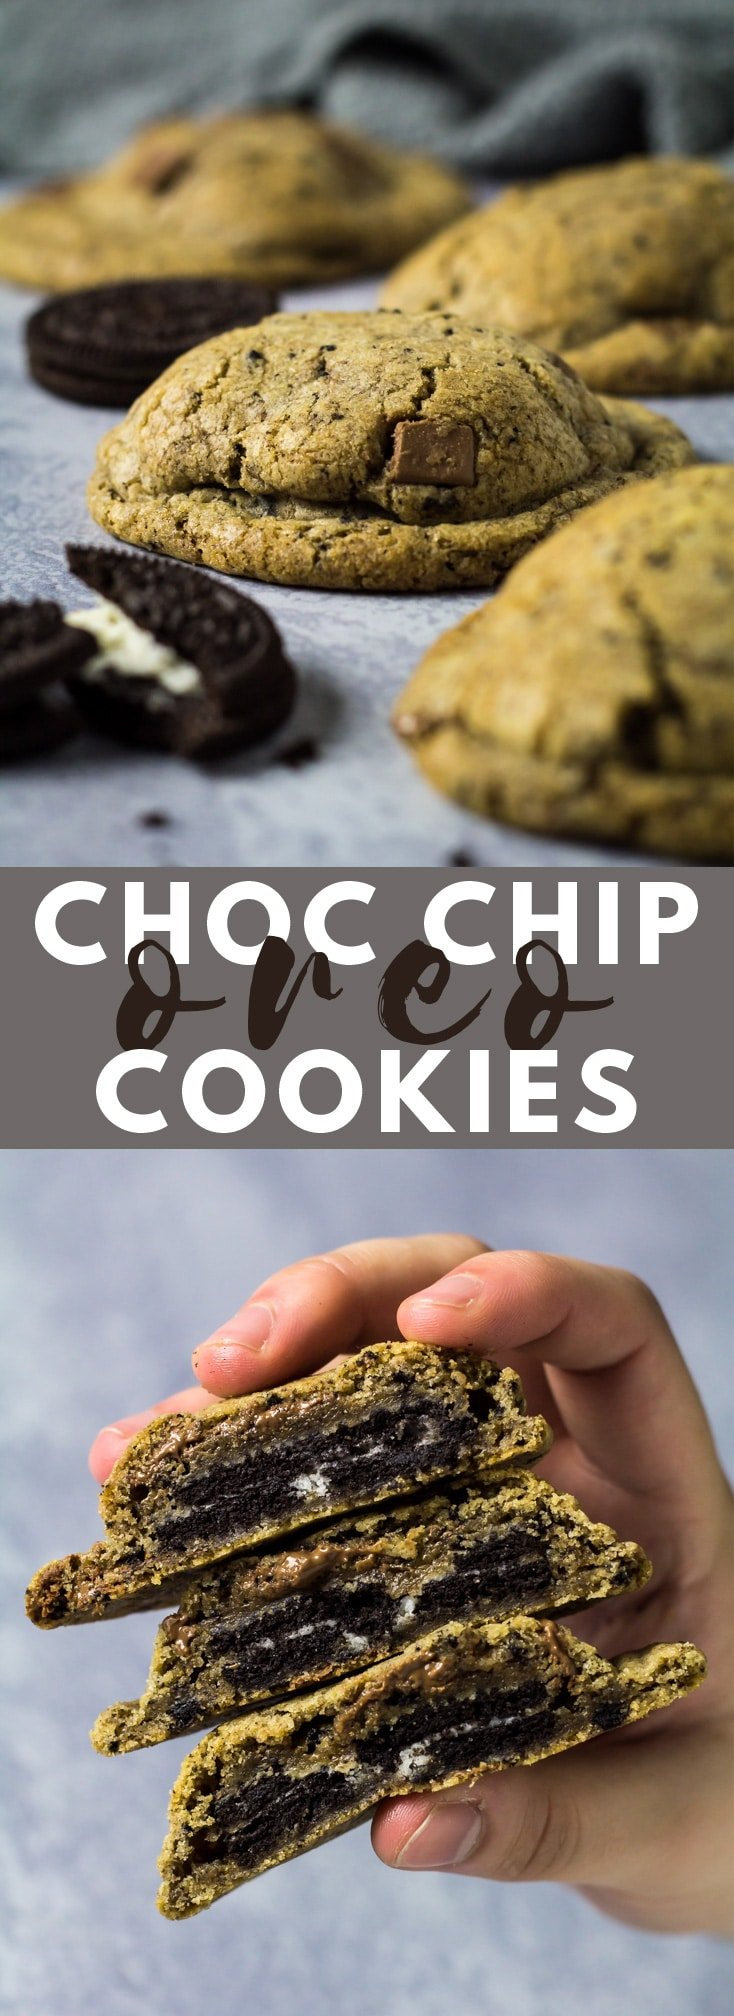 Chocolate Chip Oreo Cookies - Deliciously thick and chewy chocolate chip cookies that are loaded with Oreo crumbs, and stuffed with whole Oreos! #cookies #chocolatechipcookies #cookierecipes